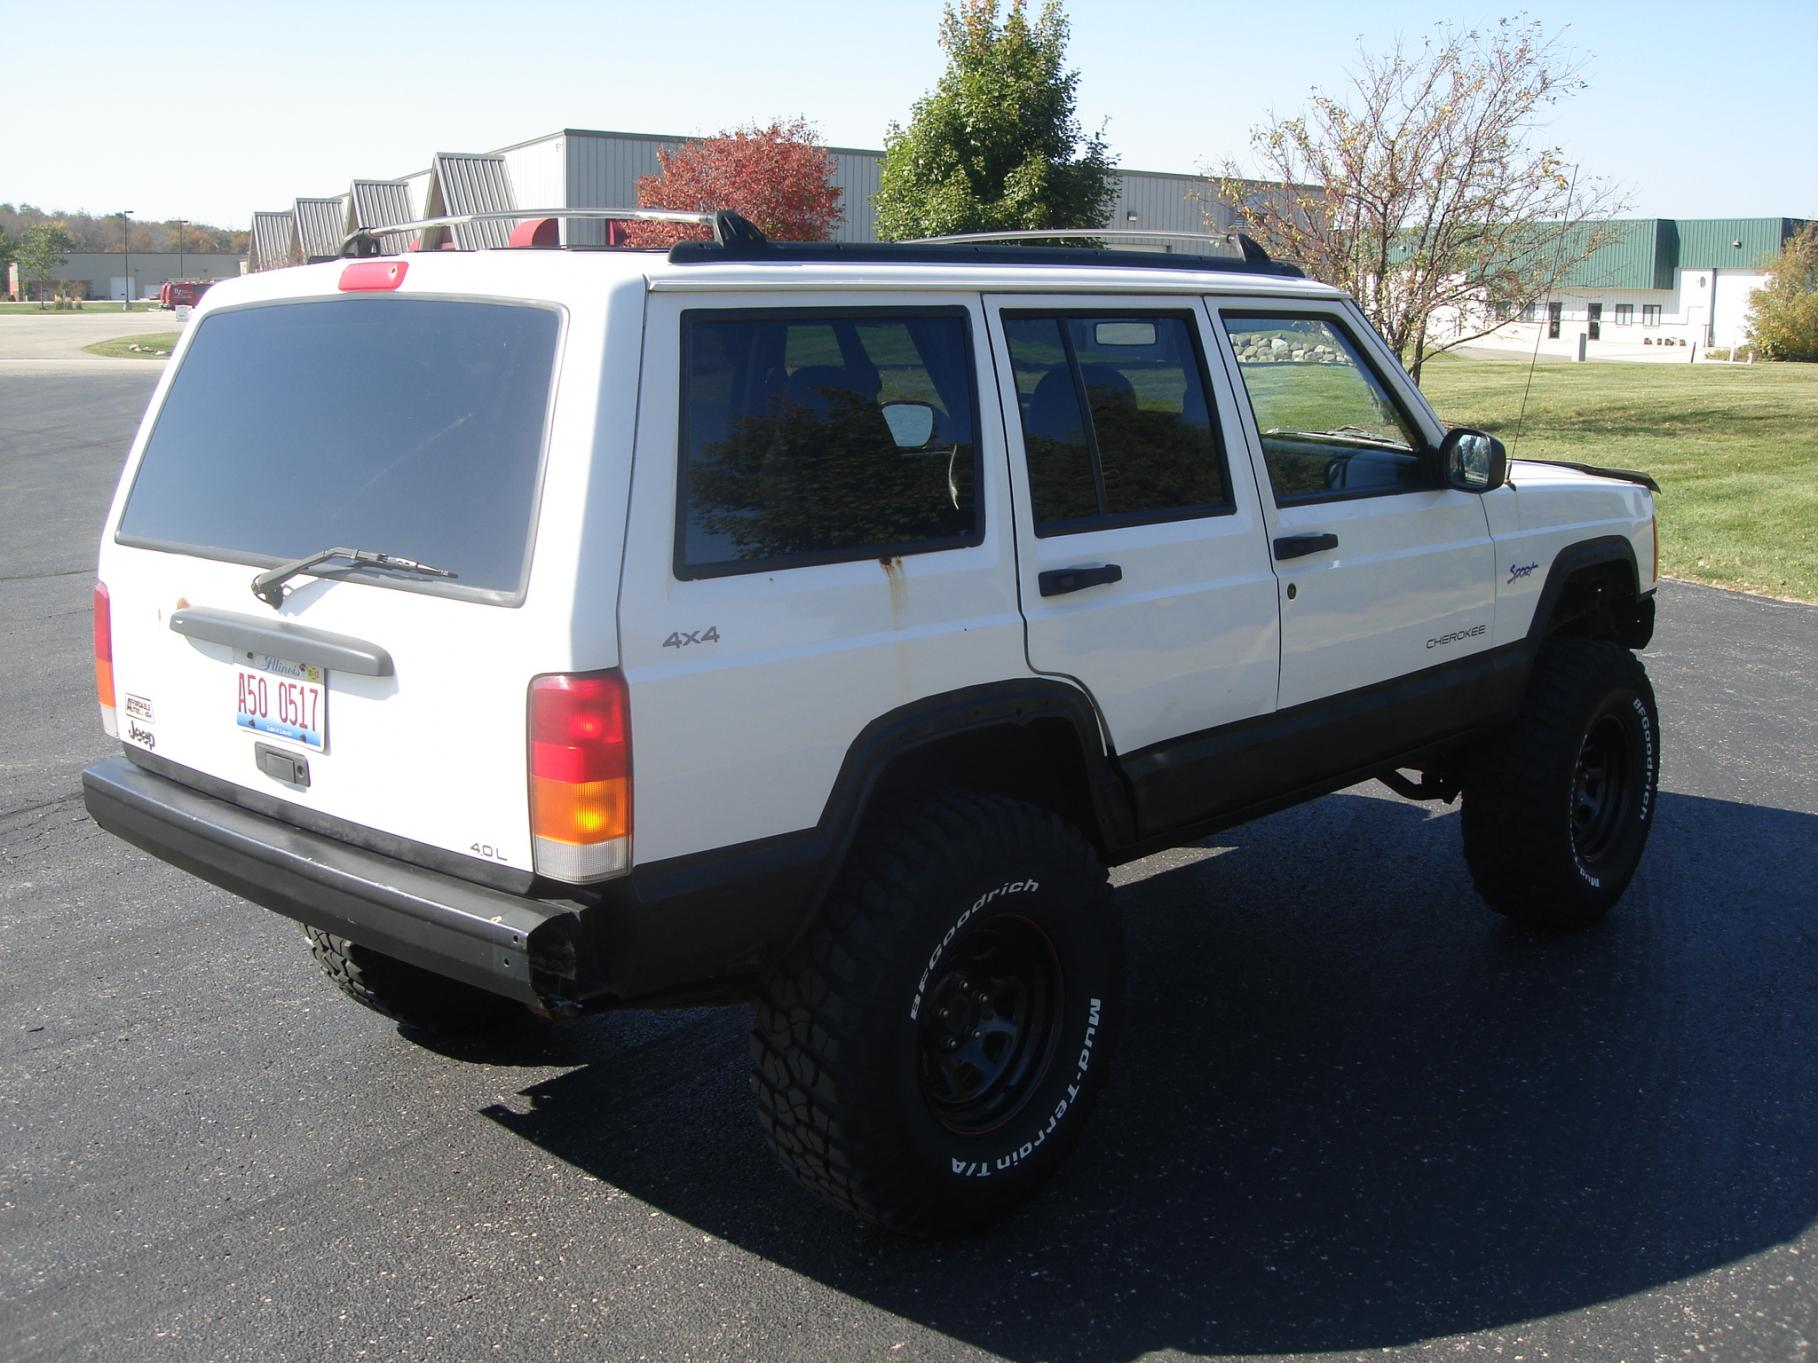 cherokee with project xj nix new lib stack truck clock the fat of receipts on img jeep a at dan that look